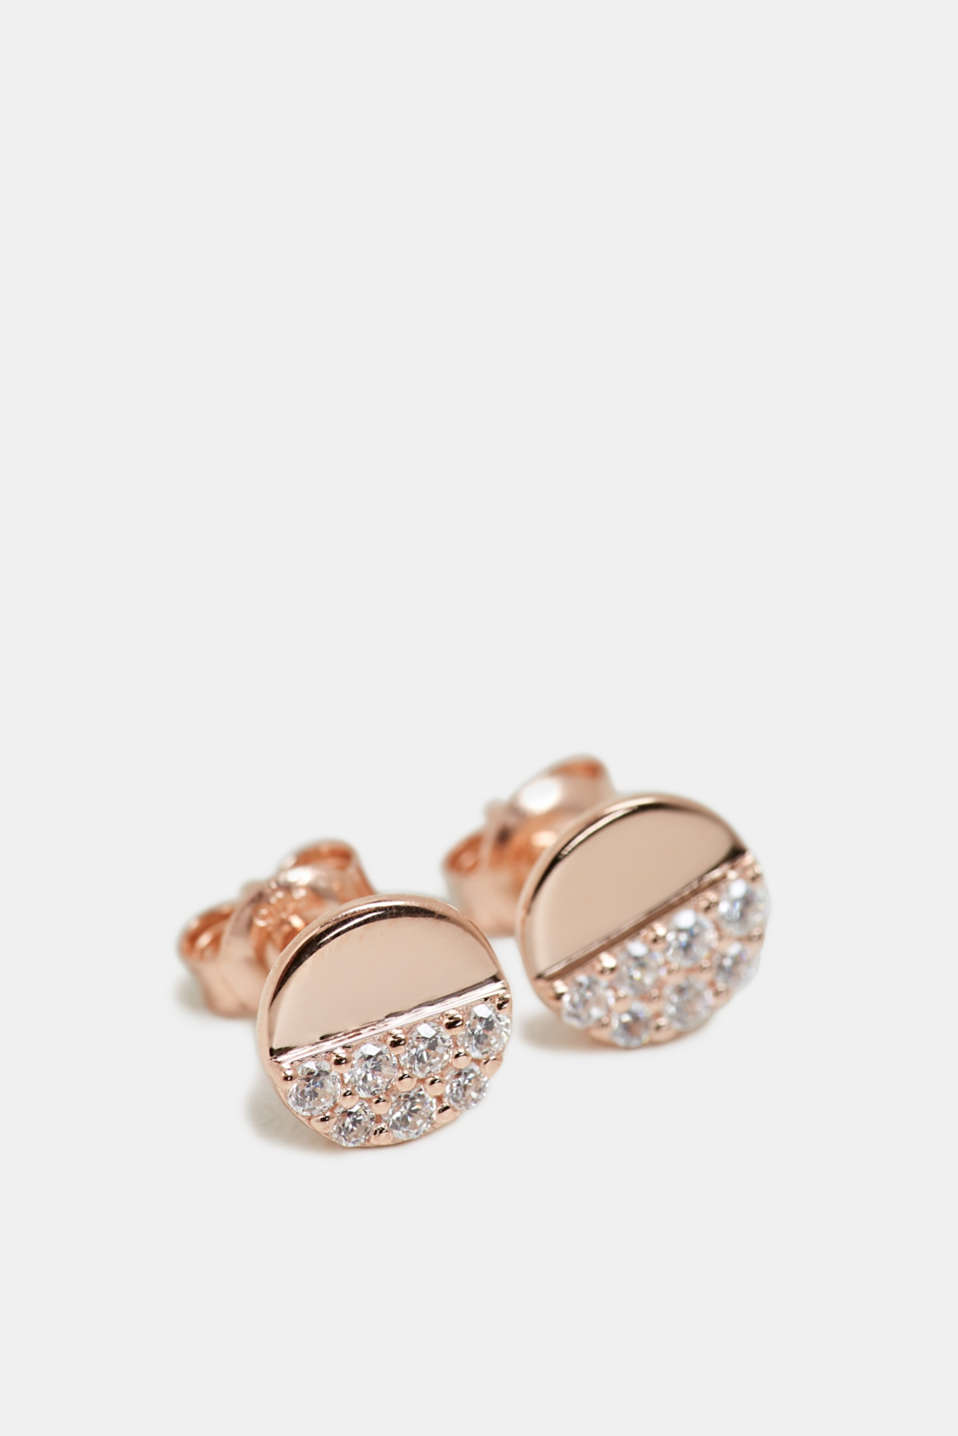 Stud earrings with a zirconia trim in sterling silver, ROSEGOLD, detail image number 0